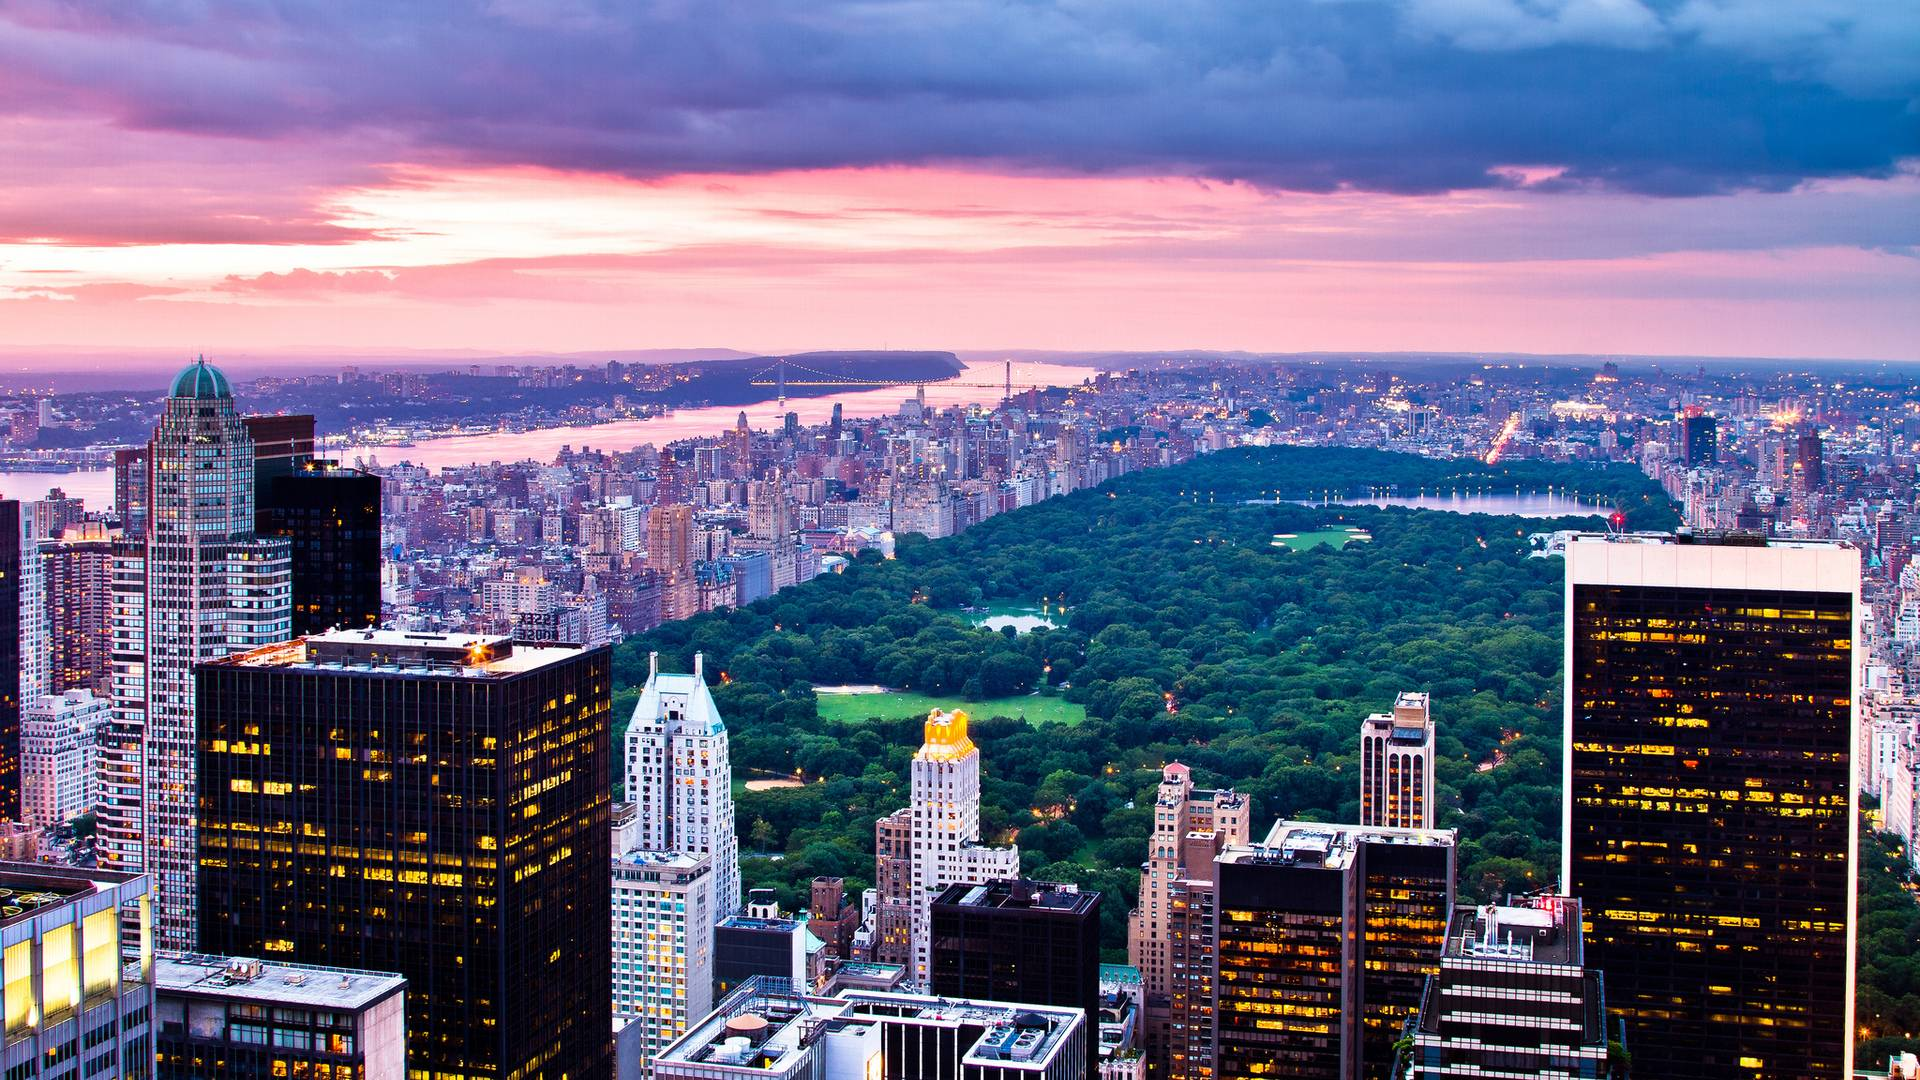 Central Park New York Wallpapers Top Free Central Park New York Backgrounds Wallpaperaccess